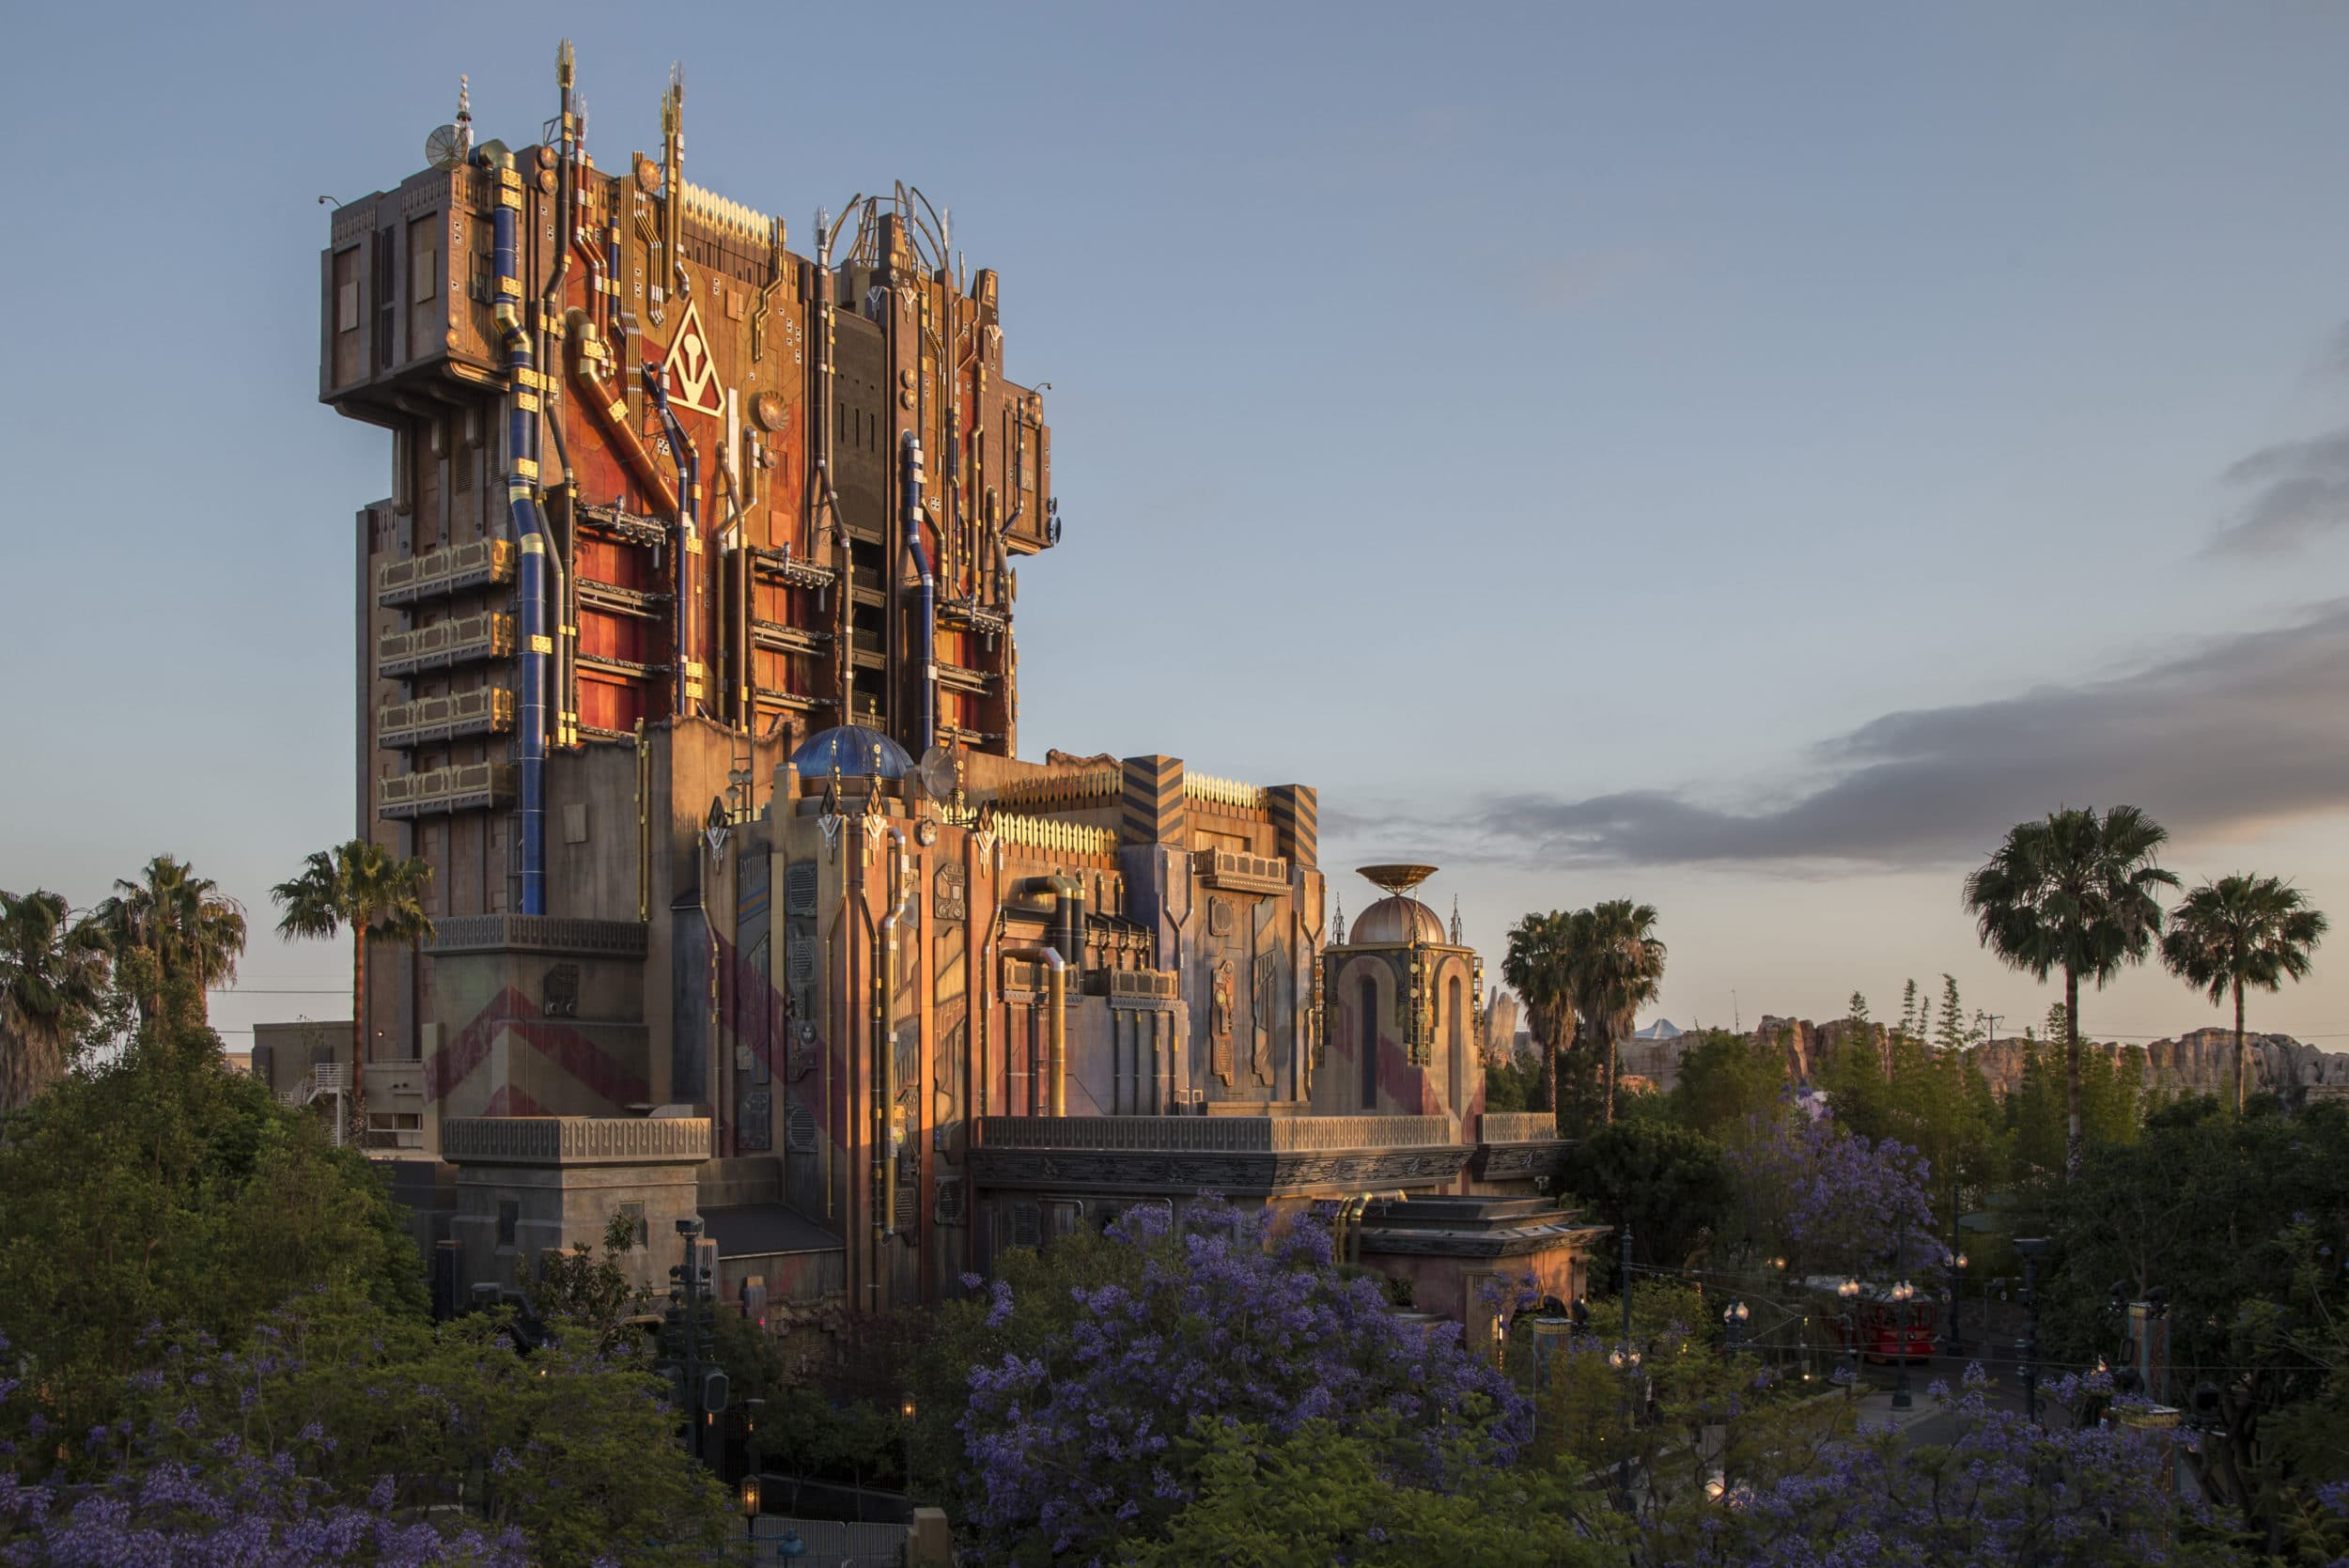 Disney California Adventure Rides: Guardians of the Galaxy--Mission: BREAKOUT!